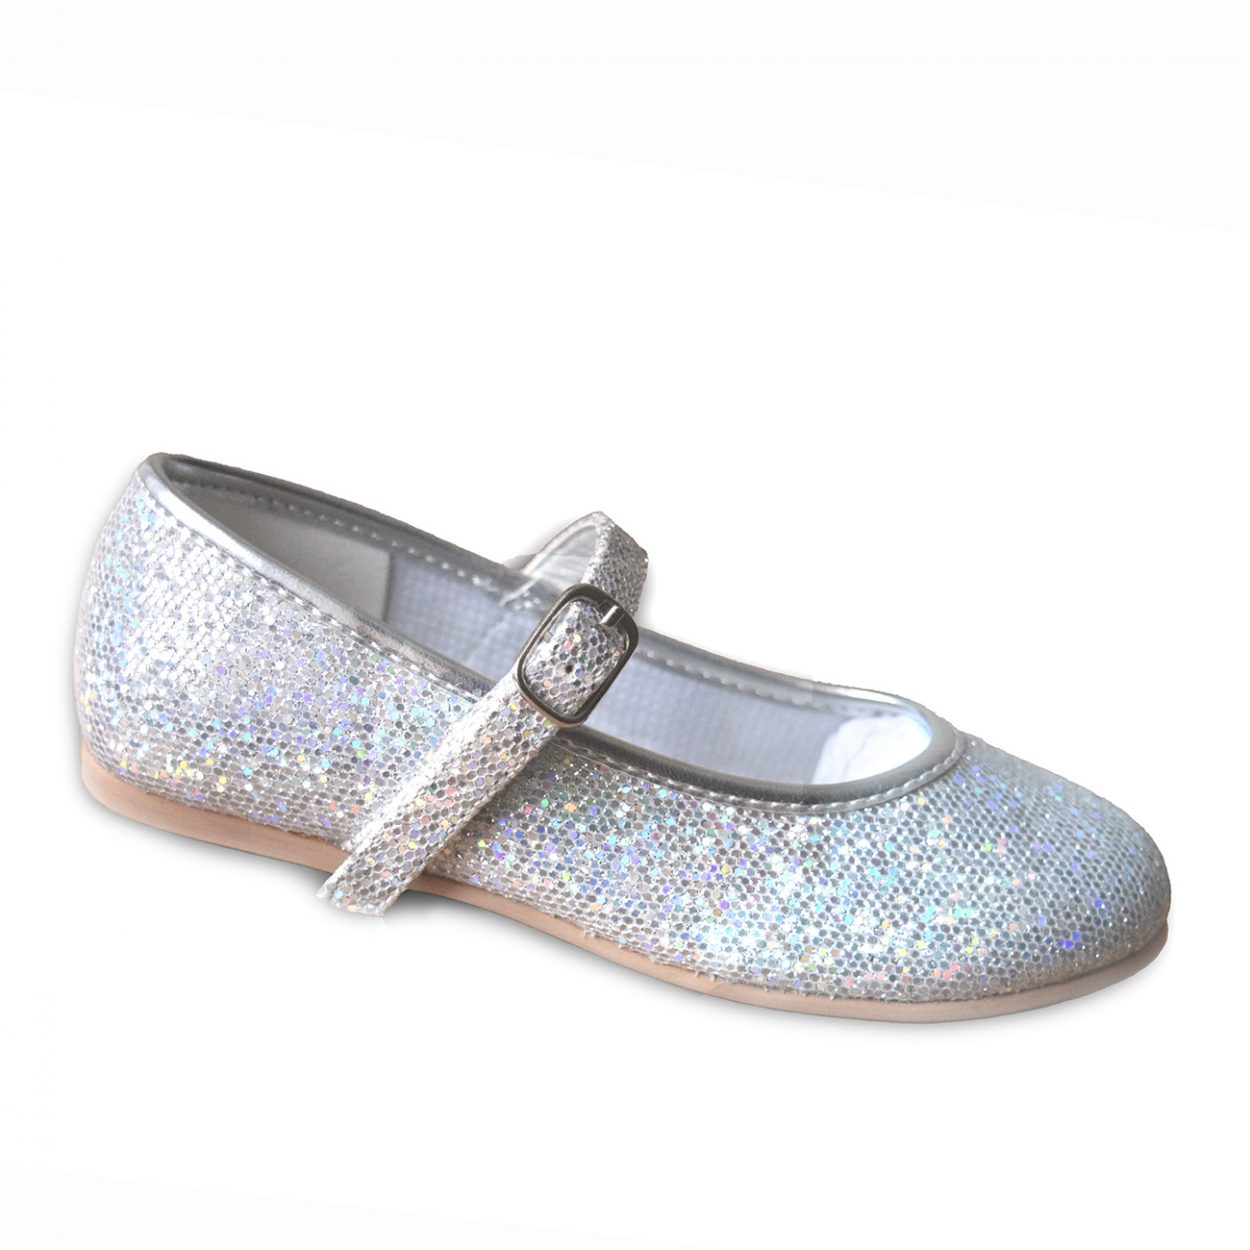 Bar-Hologram Bridal Shoe v